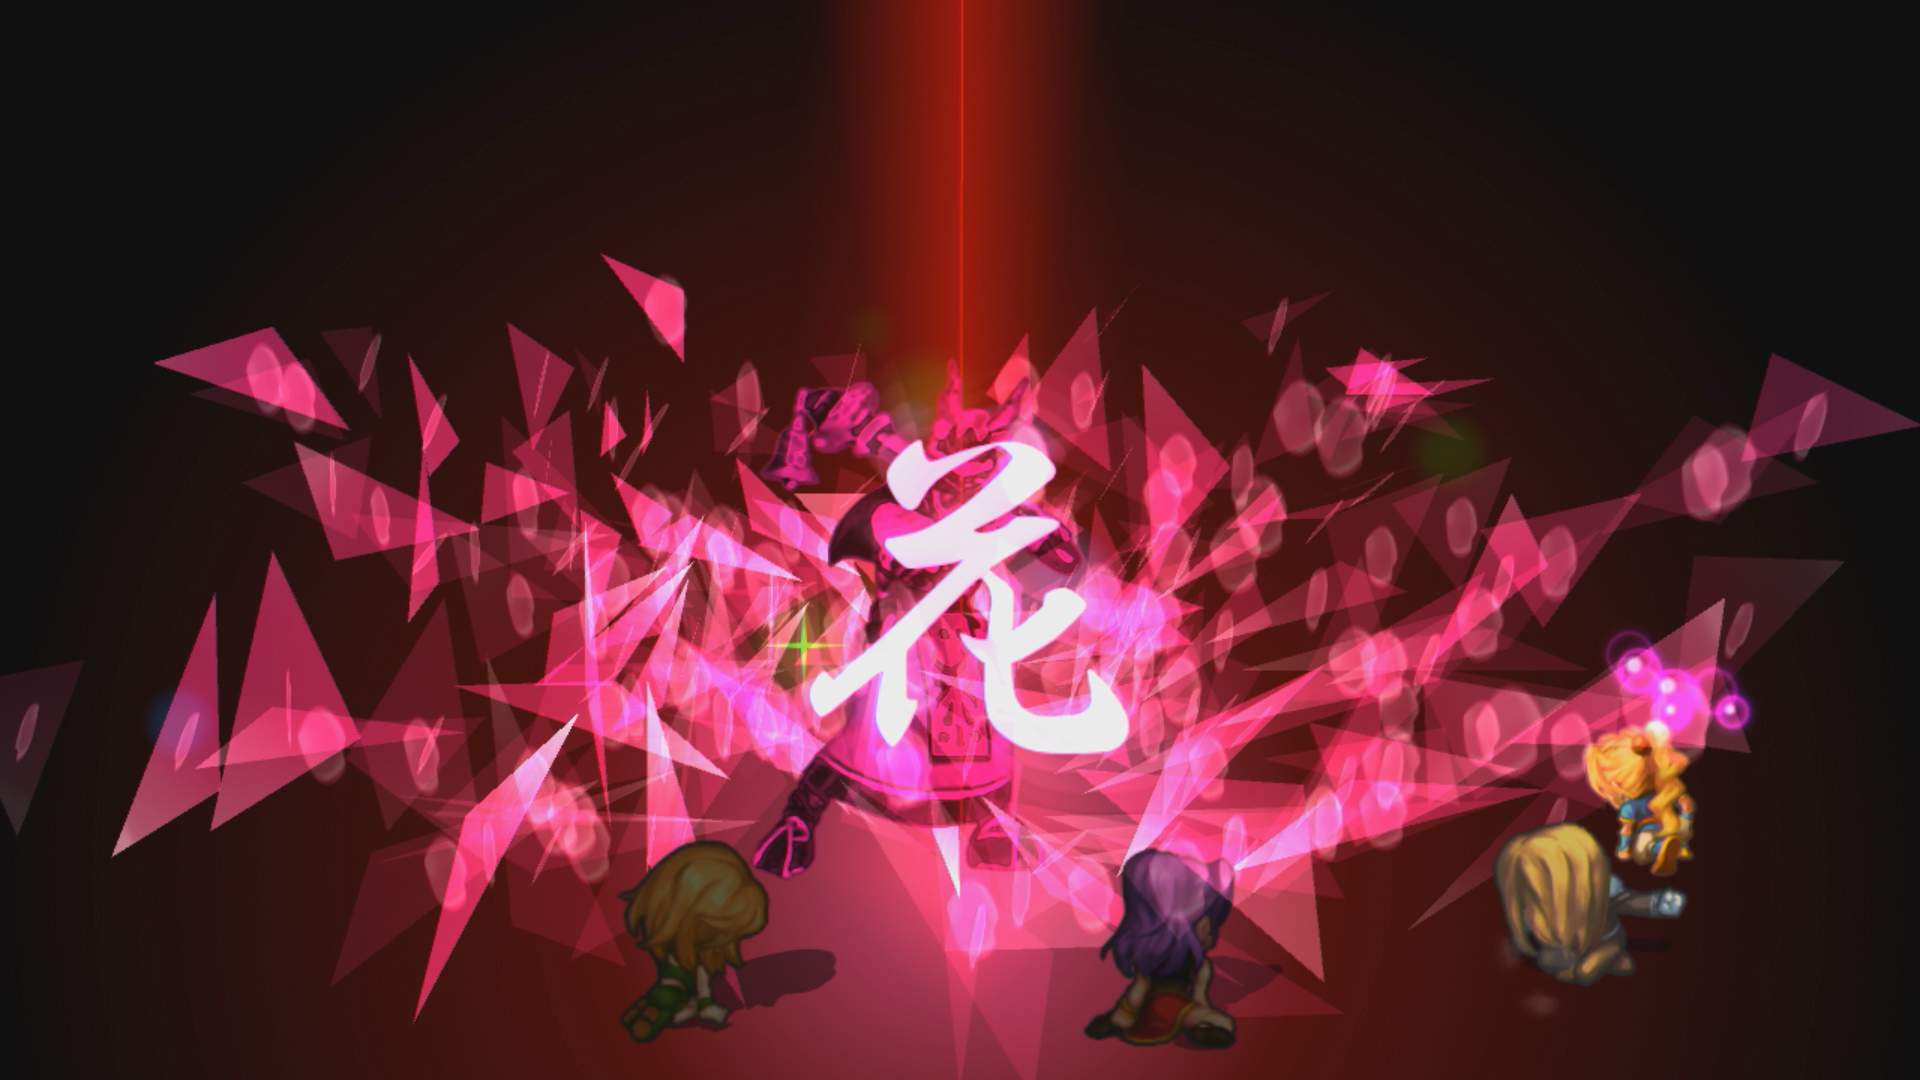 SaGa Frontier Remastered battle screen showing 4 characters at the front, using a move on an enemy. The move effect shows pink fragments with a Kanji character in the centre.